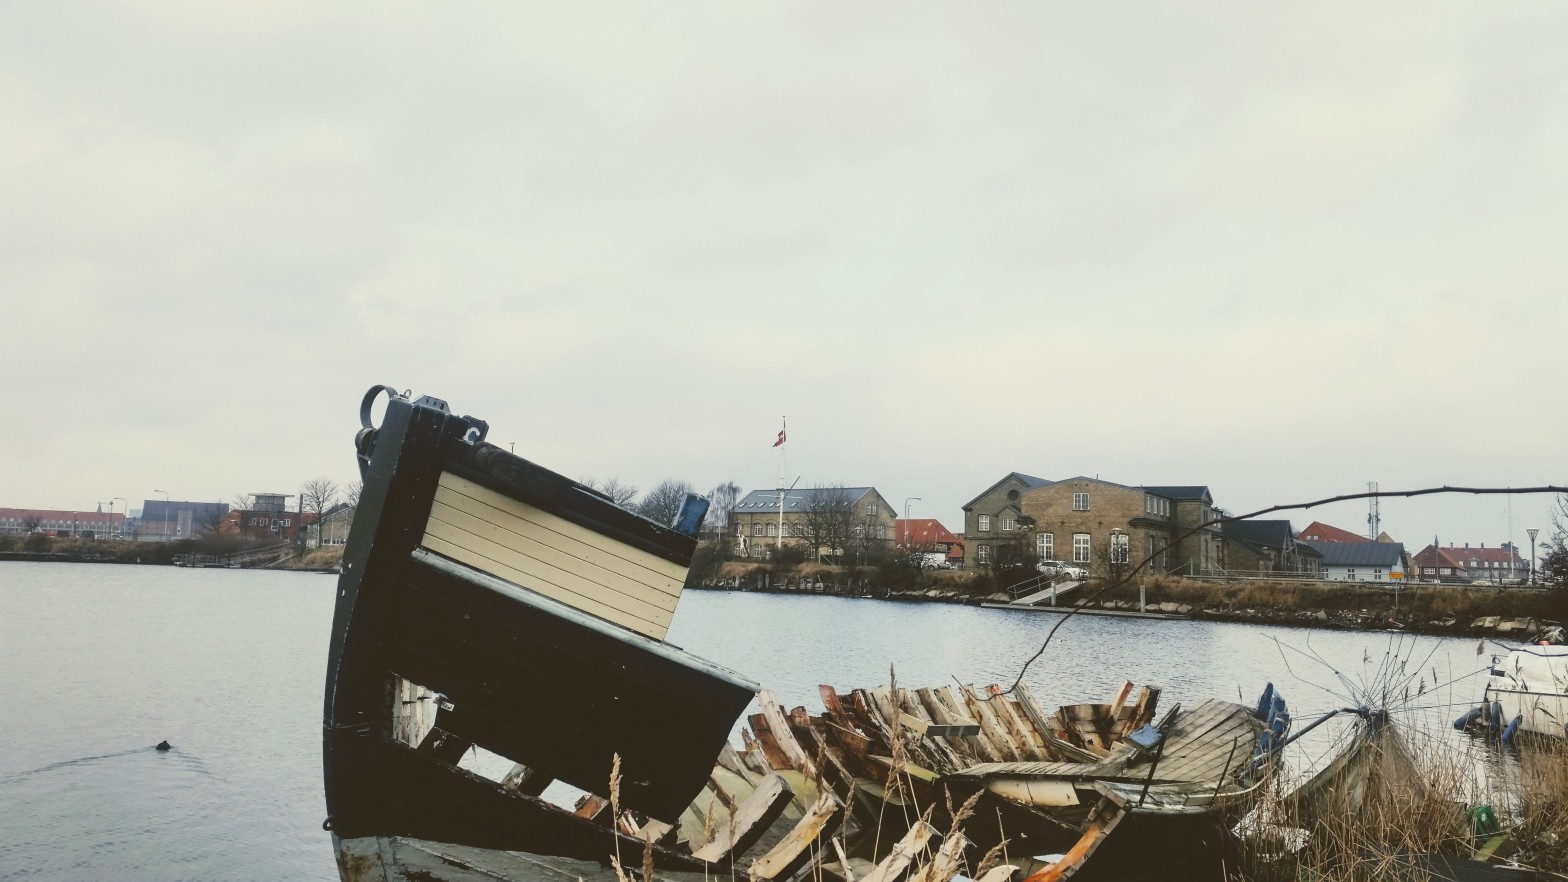 A totally broken small boat, black and white, behind which you can see some typical Danish style buildings in the outskirt of Copenhagen.